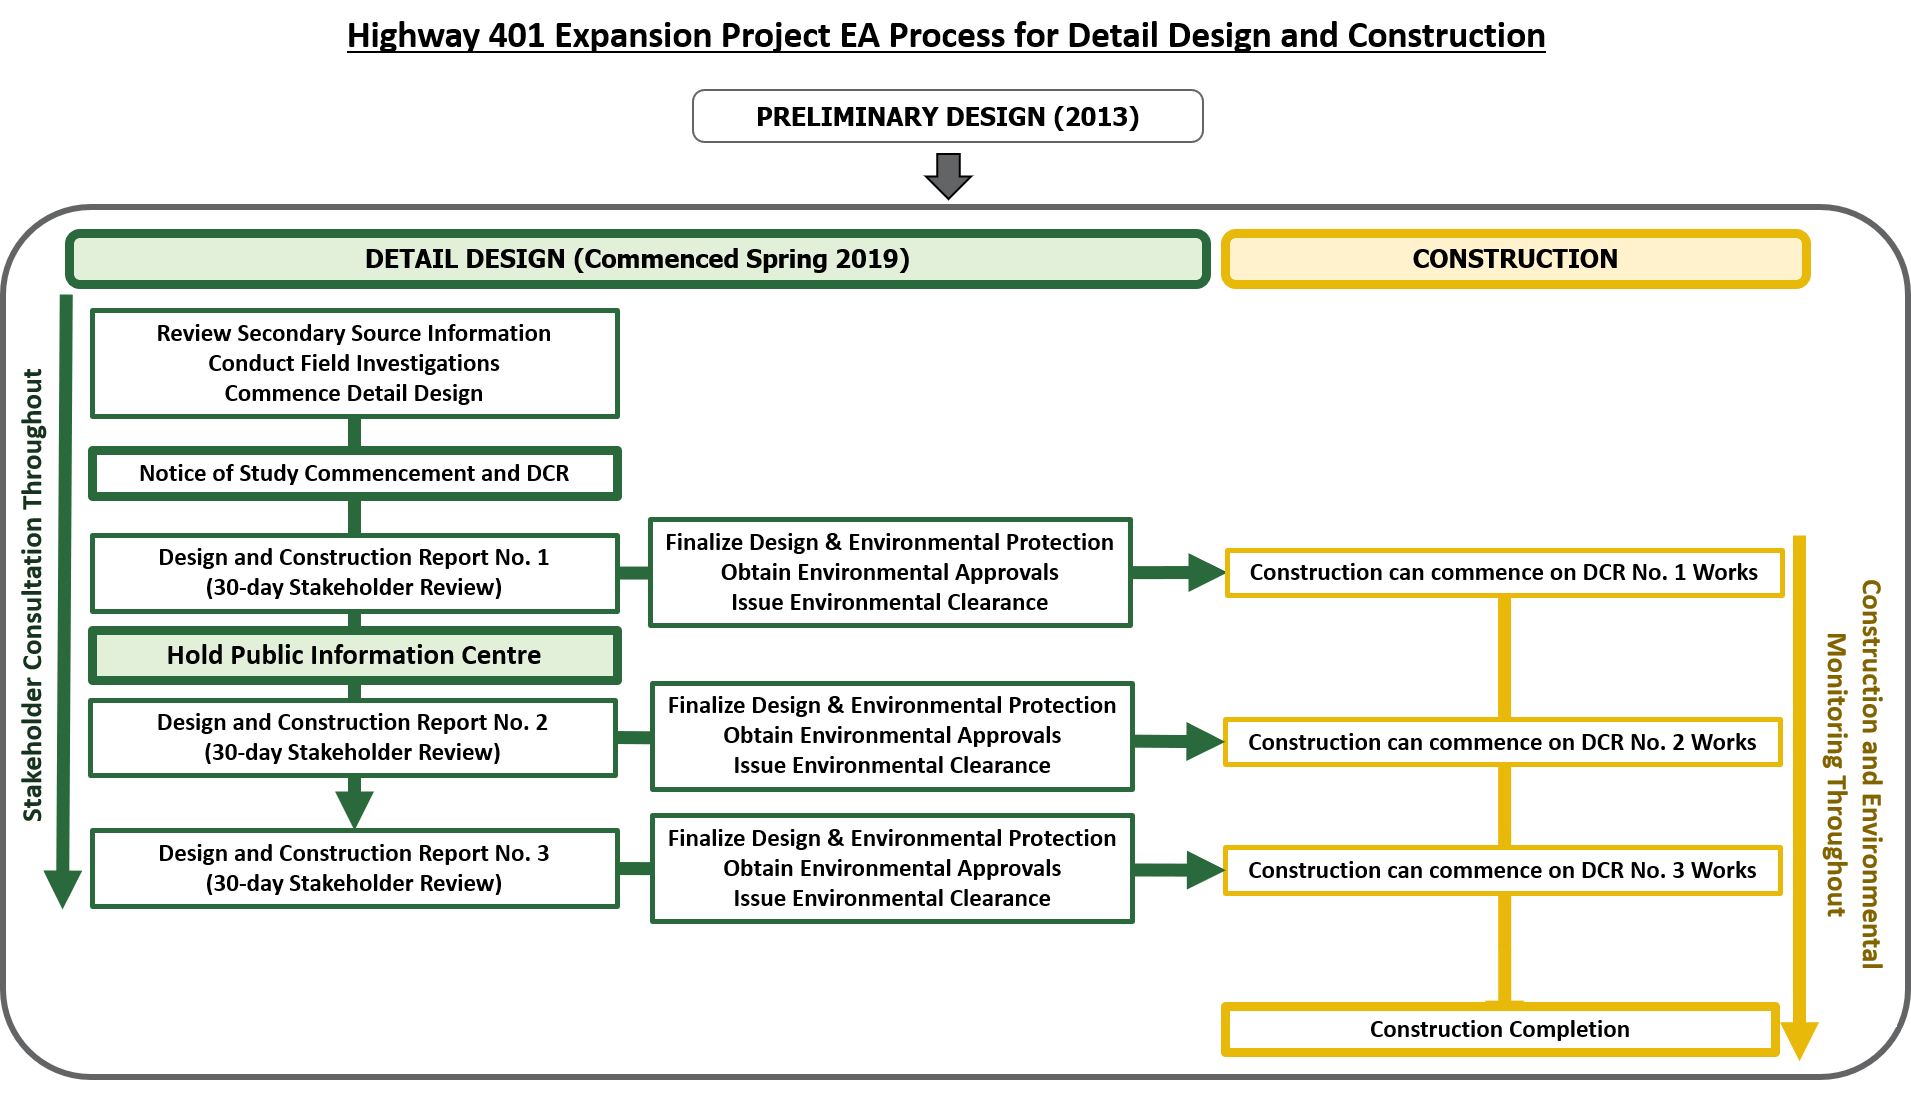 Highway 401 Expansion Project Environmental Assessment Process for Detail Design and Construction: Preliminary Design was completed in 2013. Detail design commenced in Spring 2019. Key steps in the detail design process include the review of Secondary Source Information, conducting field investigations and commencing the detail design and the Notice of Study Commencement and Design and Construction Report (published in August 2019). Multiple Design and Construction Reports will be available for a 30-day stakeholder review and after the review, the design and environmental protection measures are finalized, environmental approvals are obtained, and Environmental Clearance is issued. Construction can then start on the works in that specific DCR, while other detail design continues. A Public Information Centre will also be held. Consultation will be ongoing throughout the entire detail design phase. Throughout construction there will be construction and environmental monitoring.